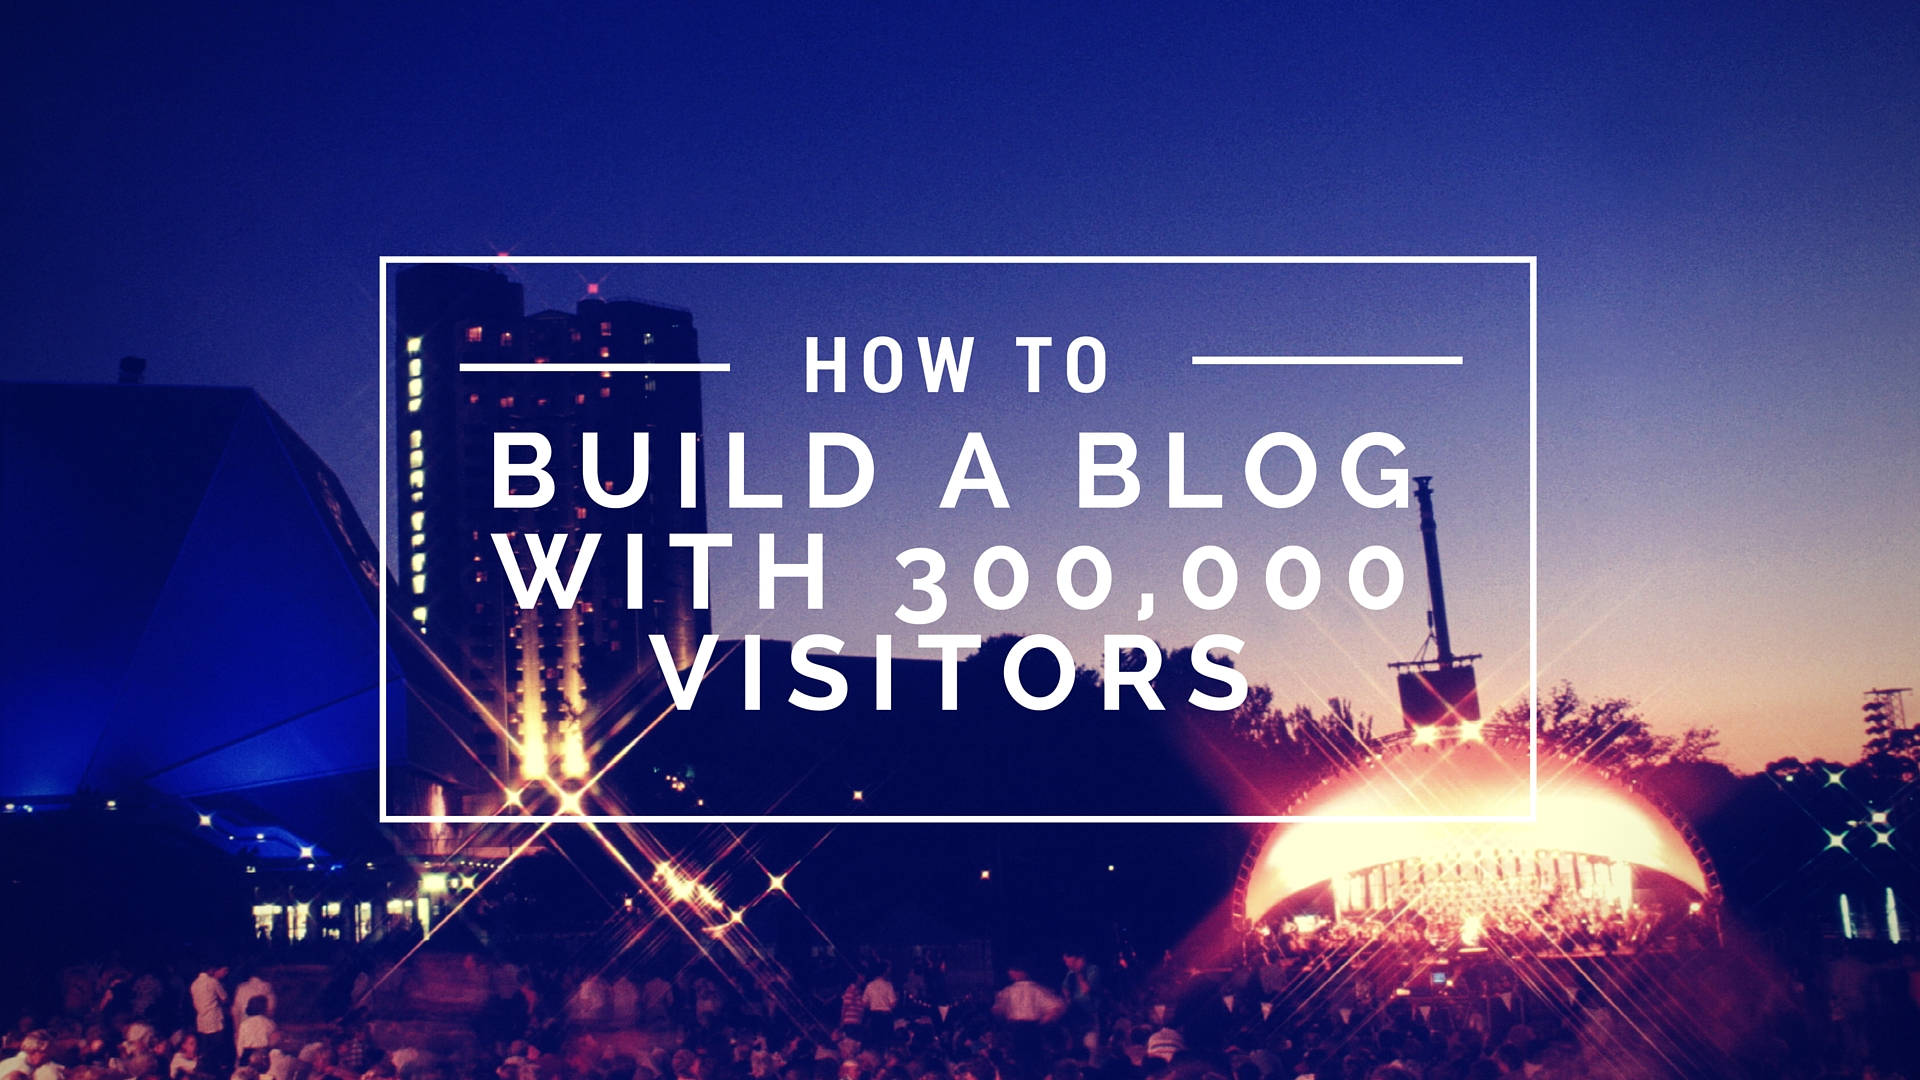 Secrets to Build a Blog of 300,000 Monthly Visitors